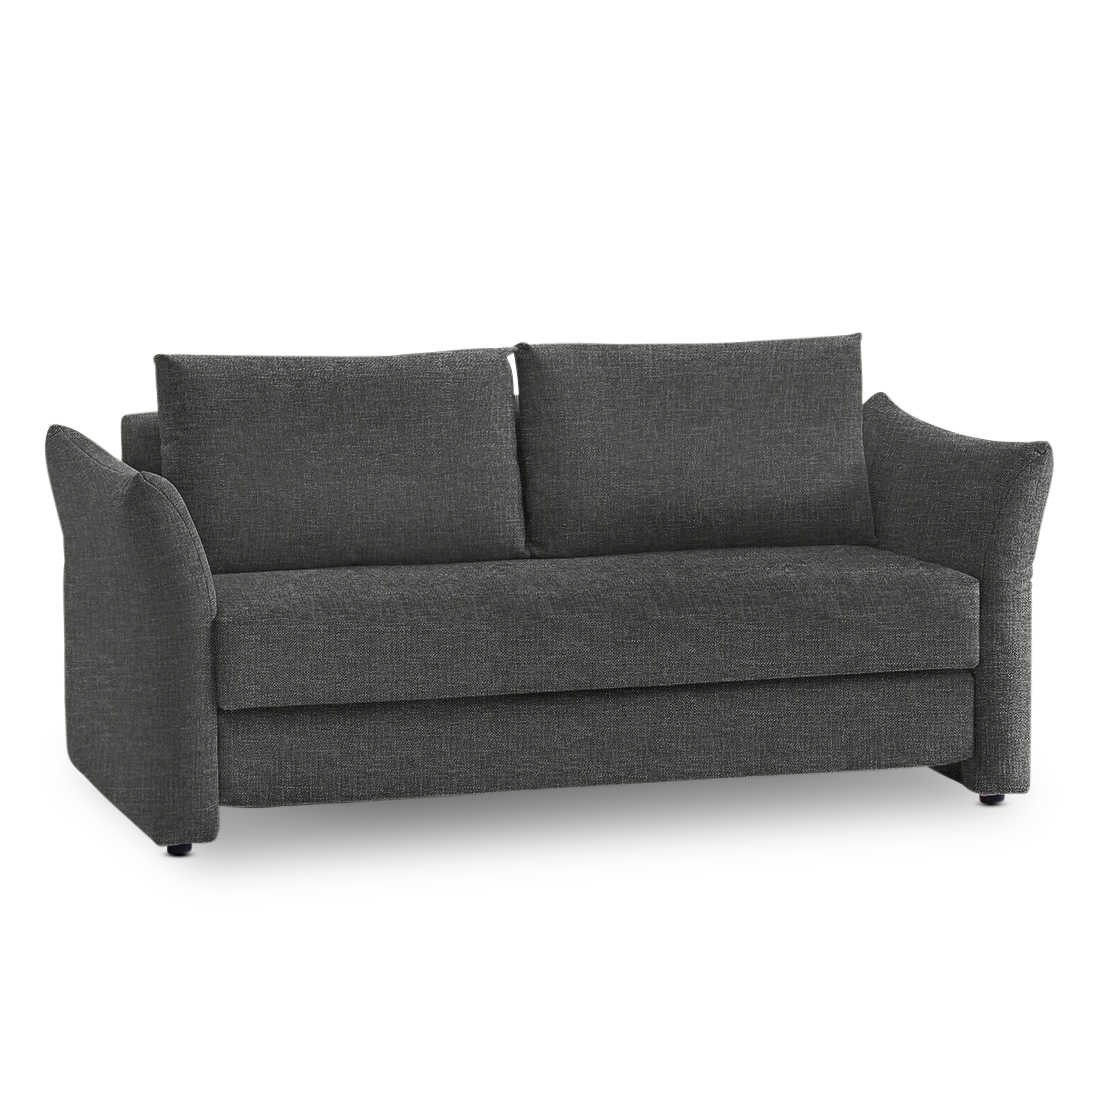 franz fertig schlafsofa loris grau stoff online kaufen bei. Black Bedroom Furniture Sets. Home Design Ideas